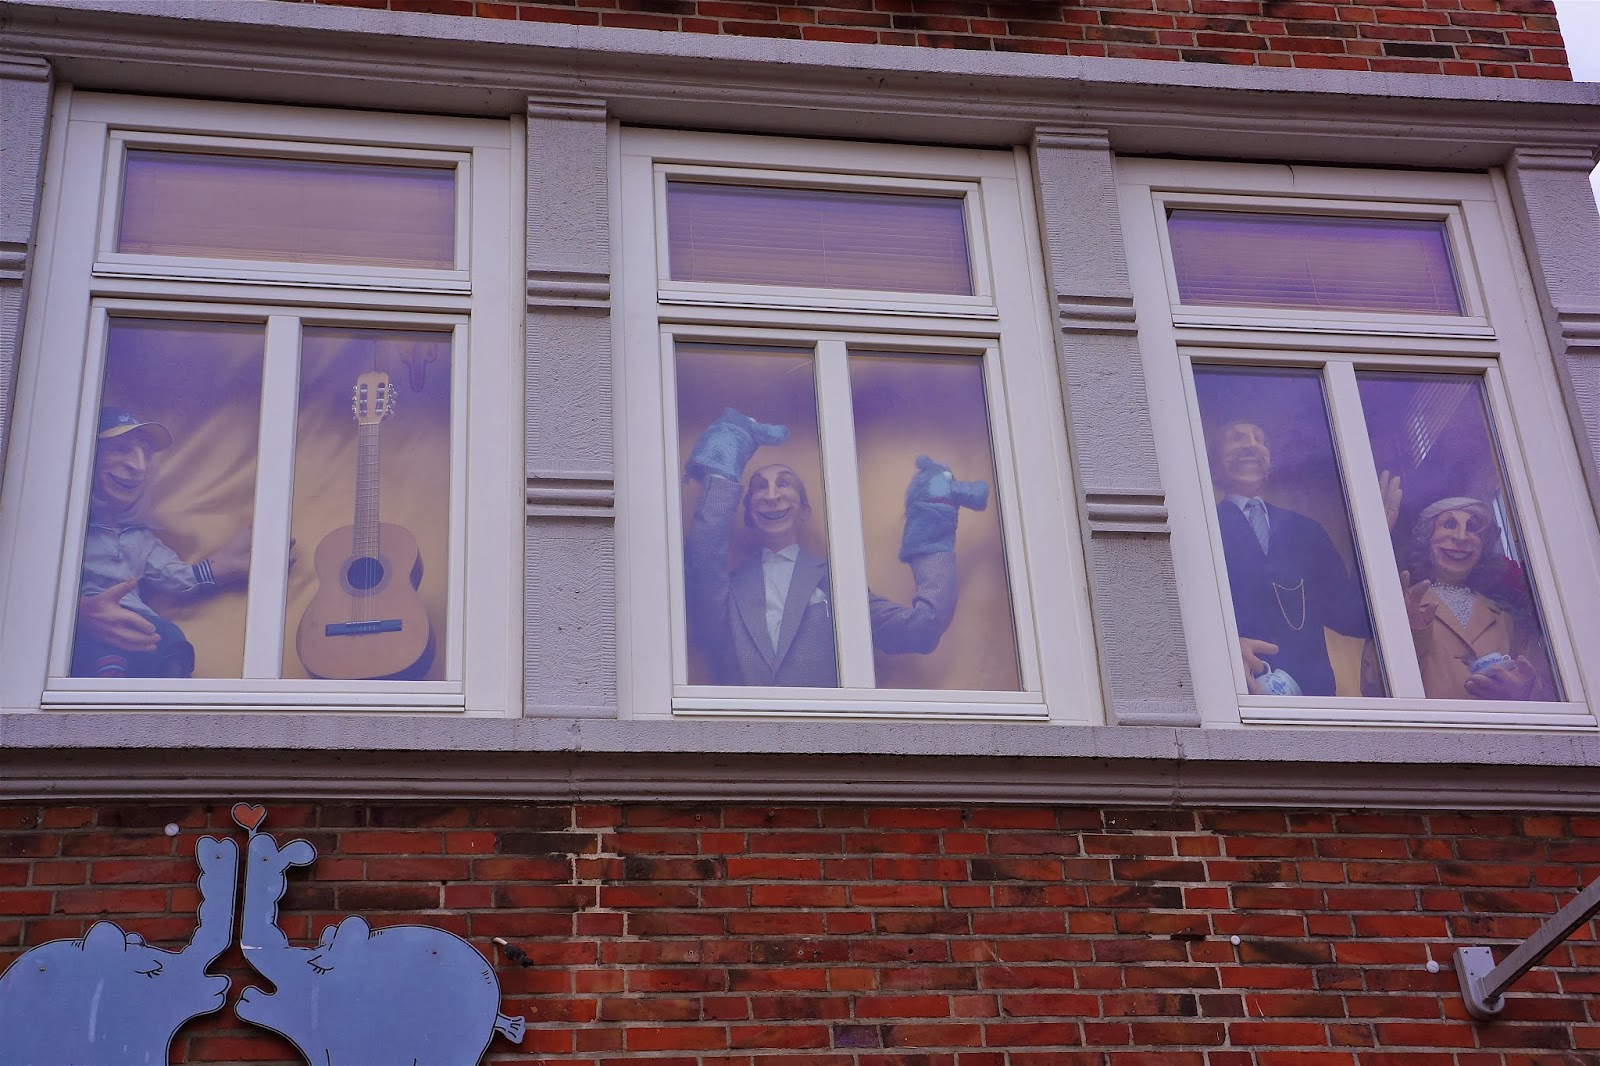 Picture of funny puppets in the windows of Dat Otto Huus in Emden, Germany.